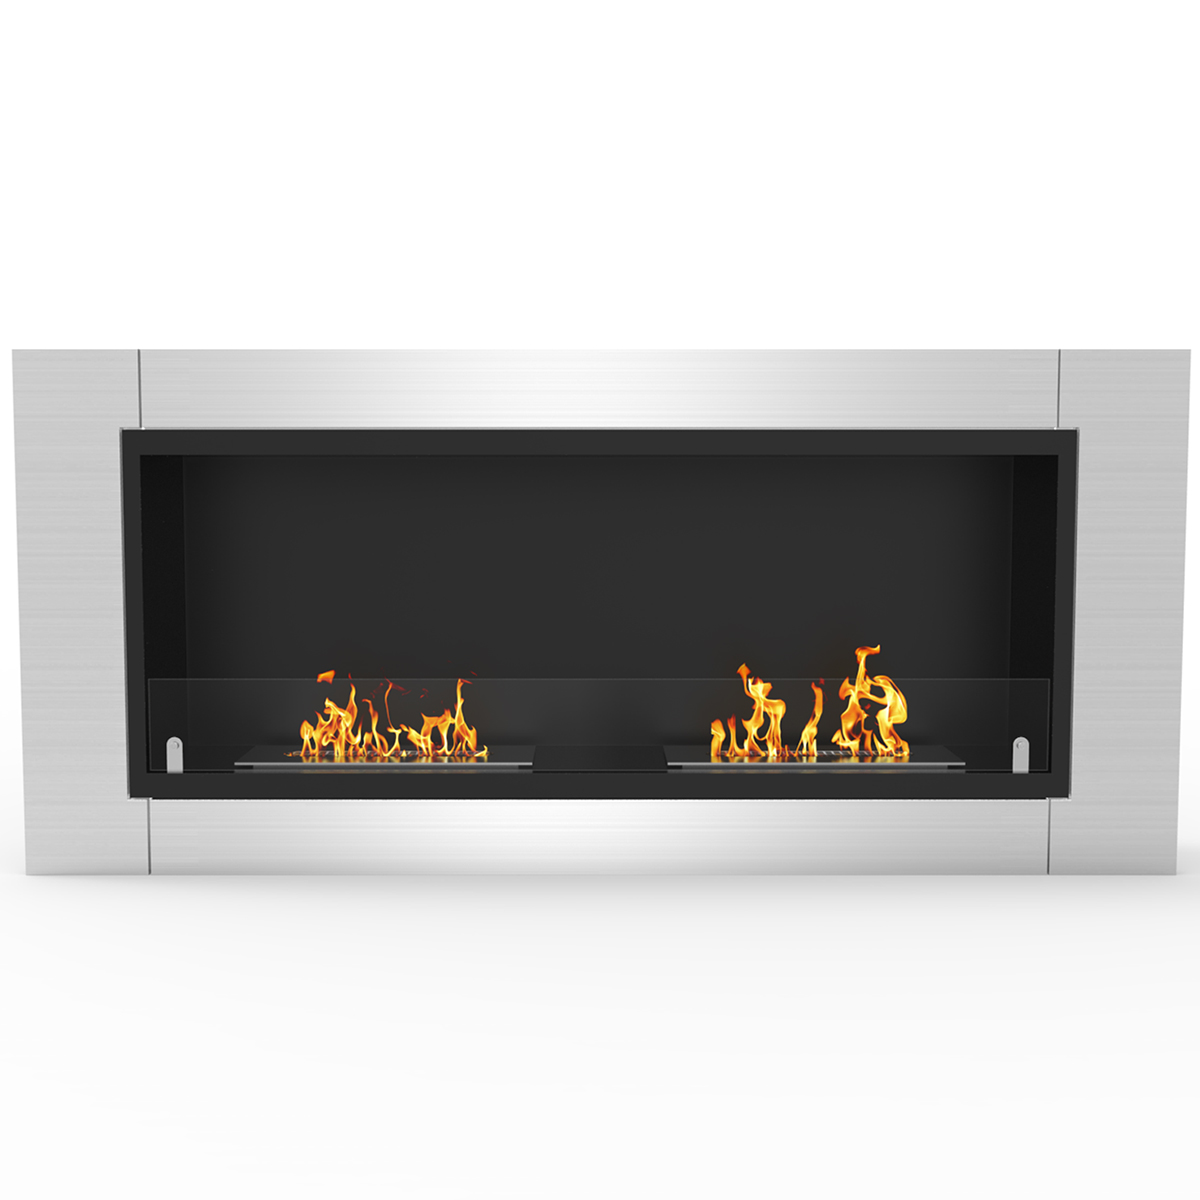 Regal Flame Stainless Steel Phoenix Ventless Free Standing Ethanol Fireplace Can Be Used as a Indoor, Outdoor, Gas Log Inserts,